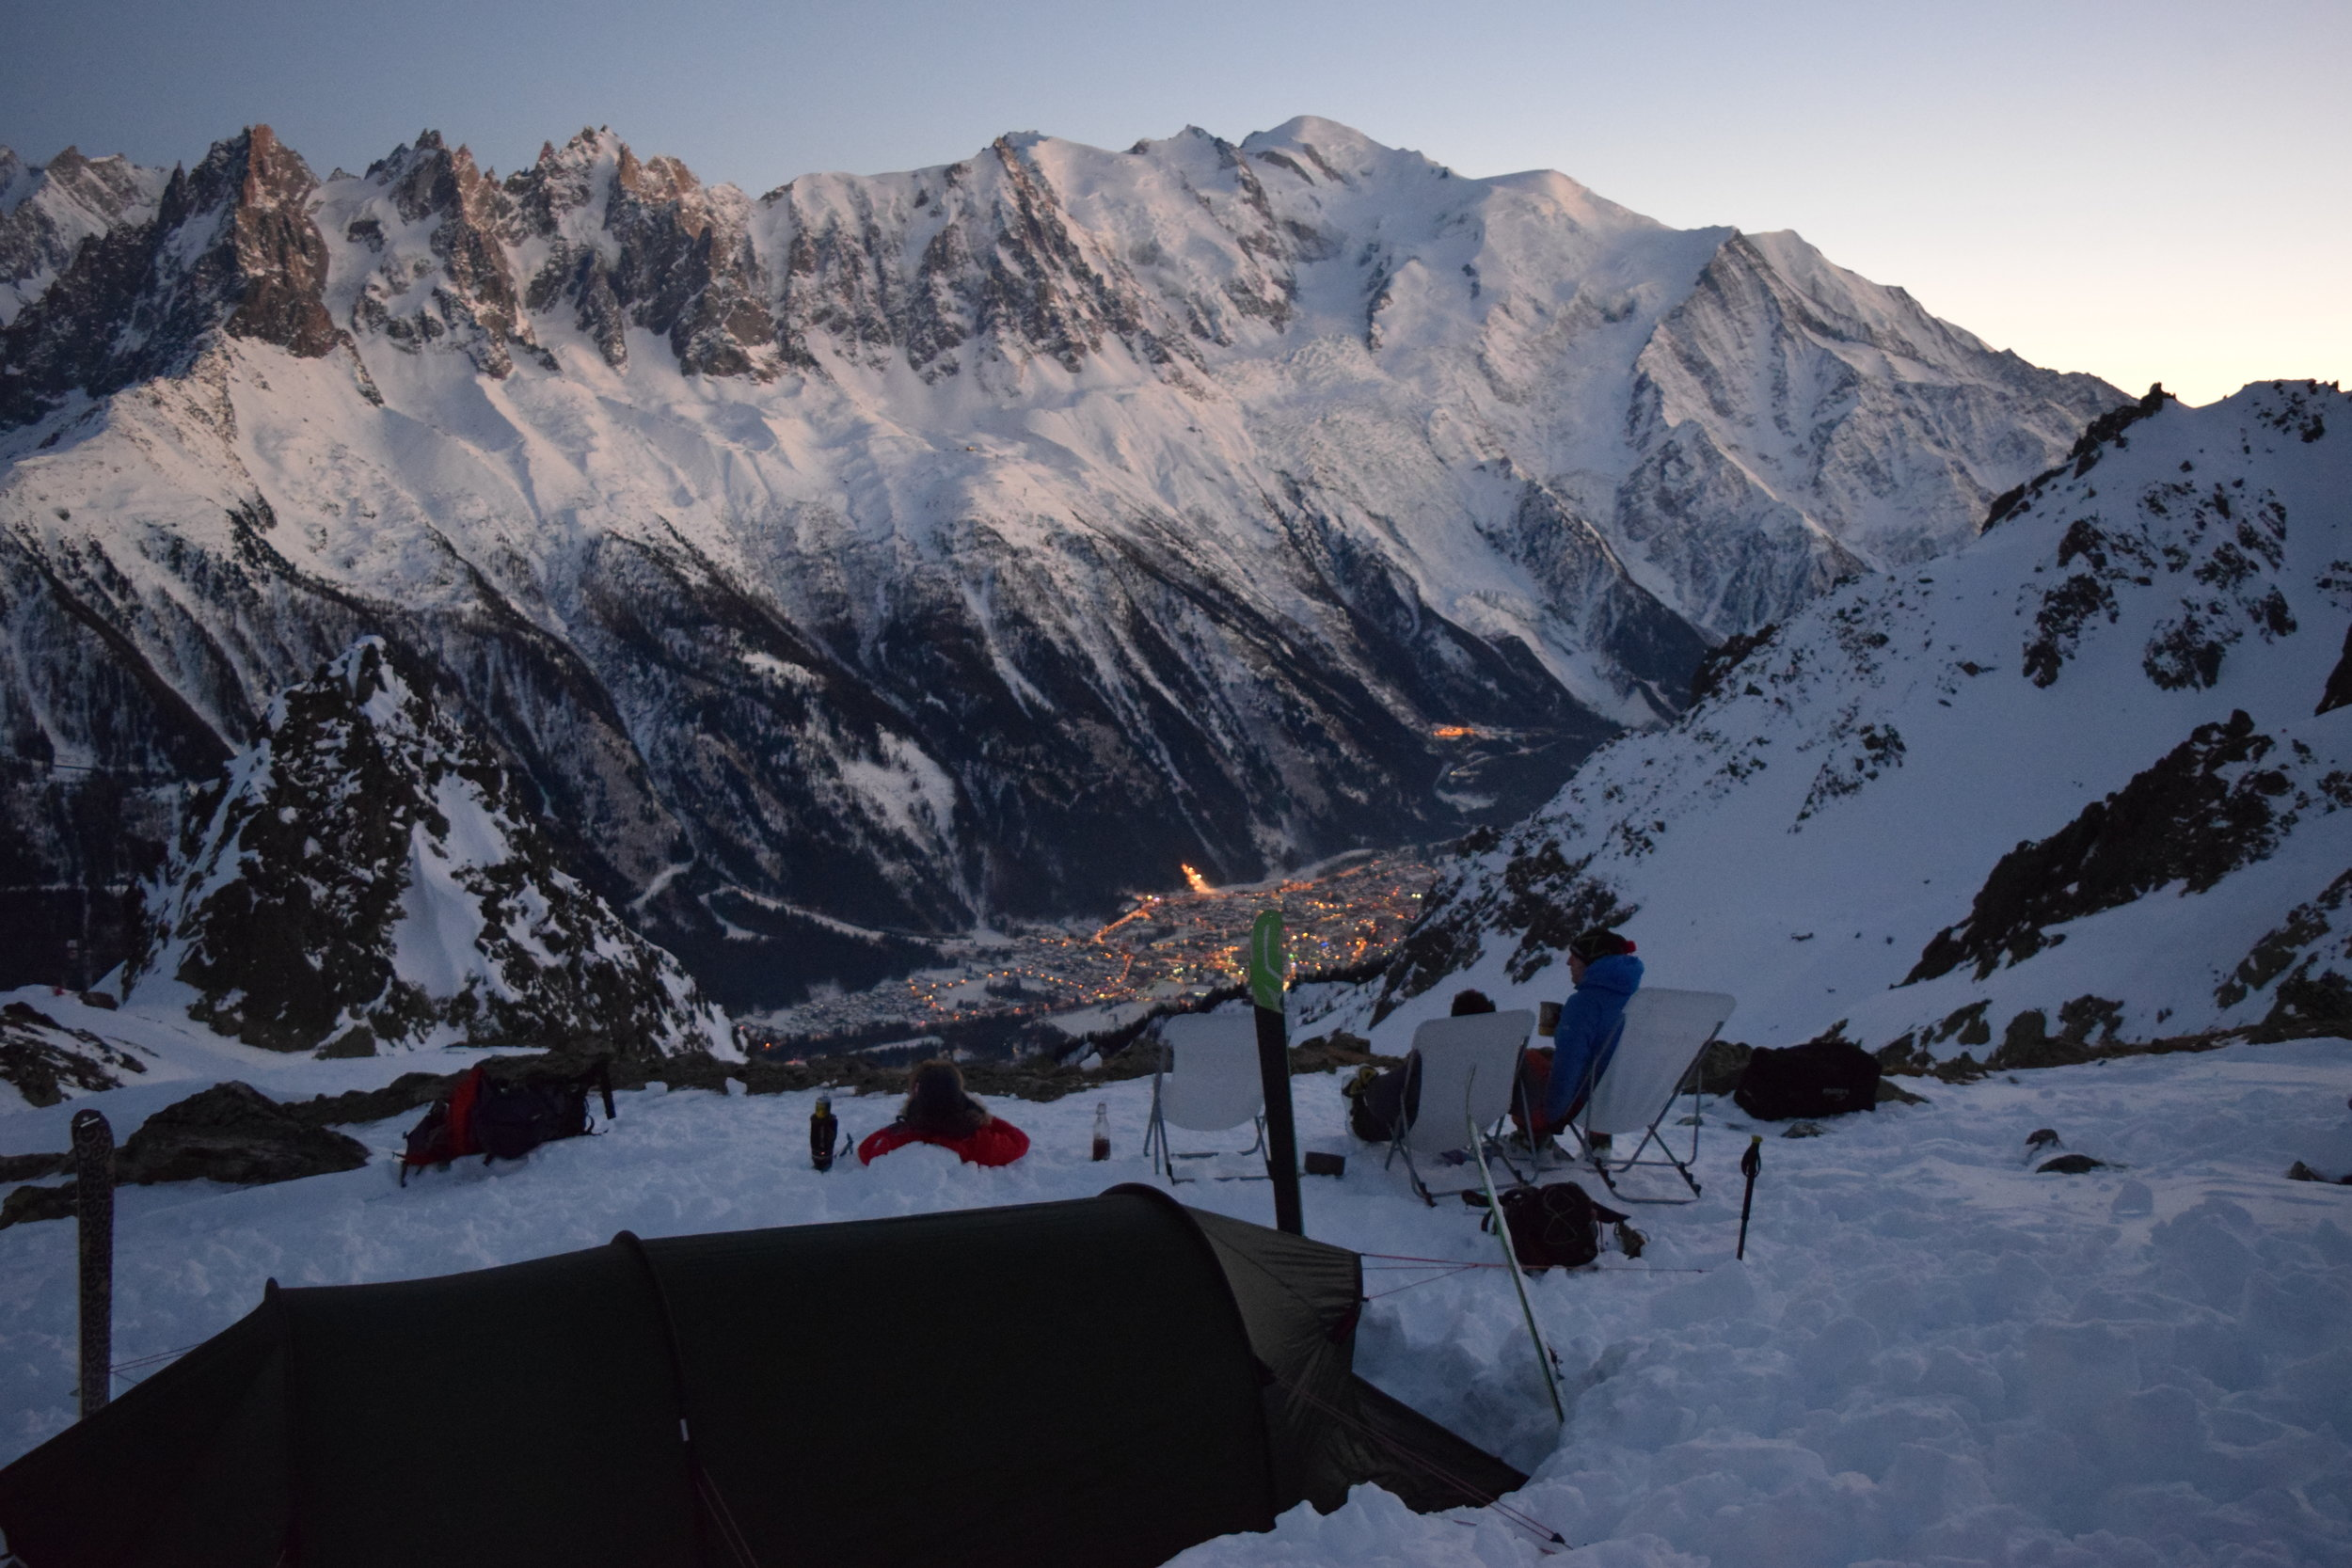 Sophie Radcliffe, winter adventure inspiration, wild camping and climbing